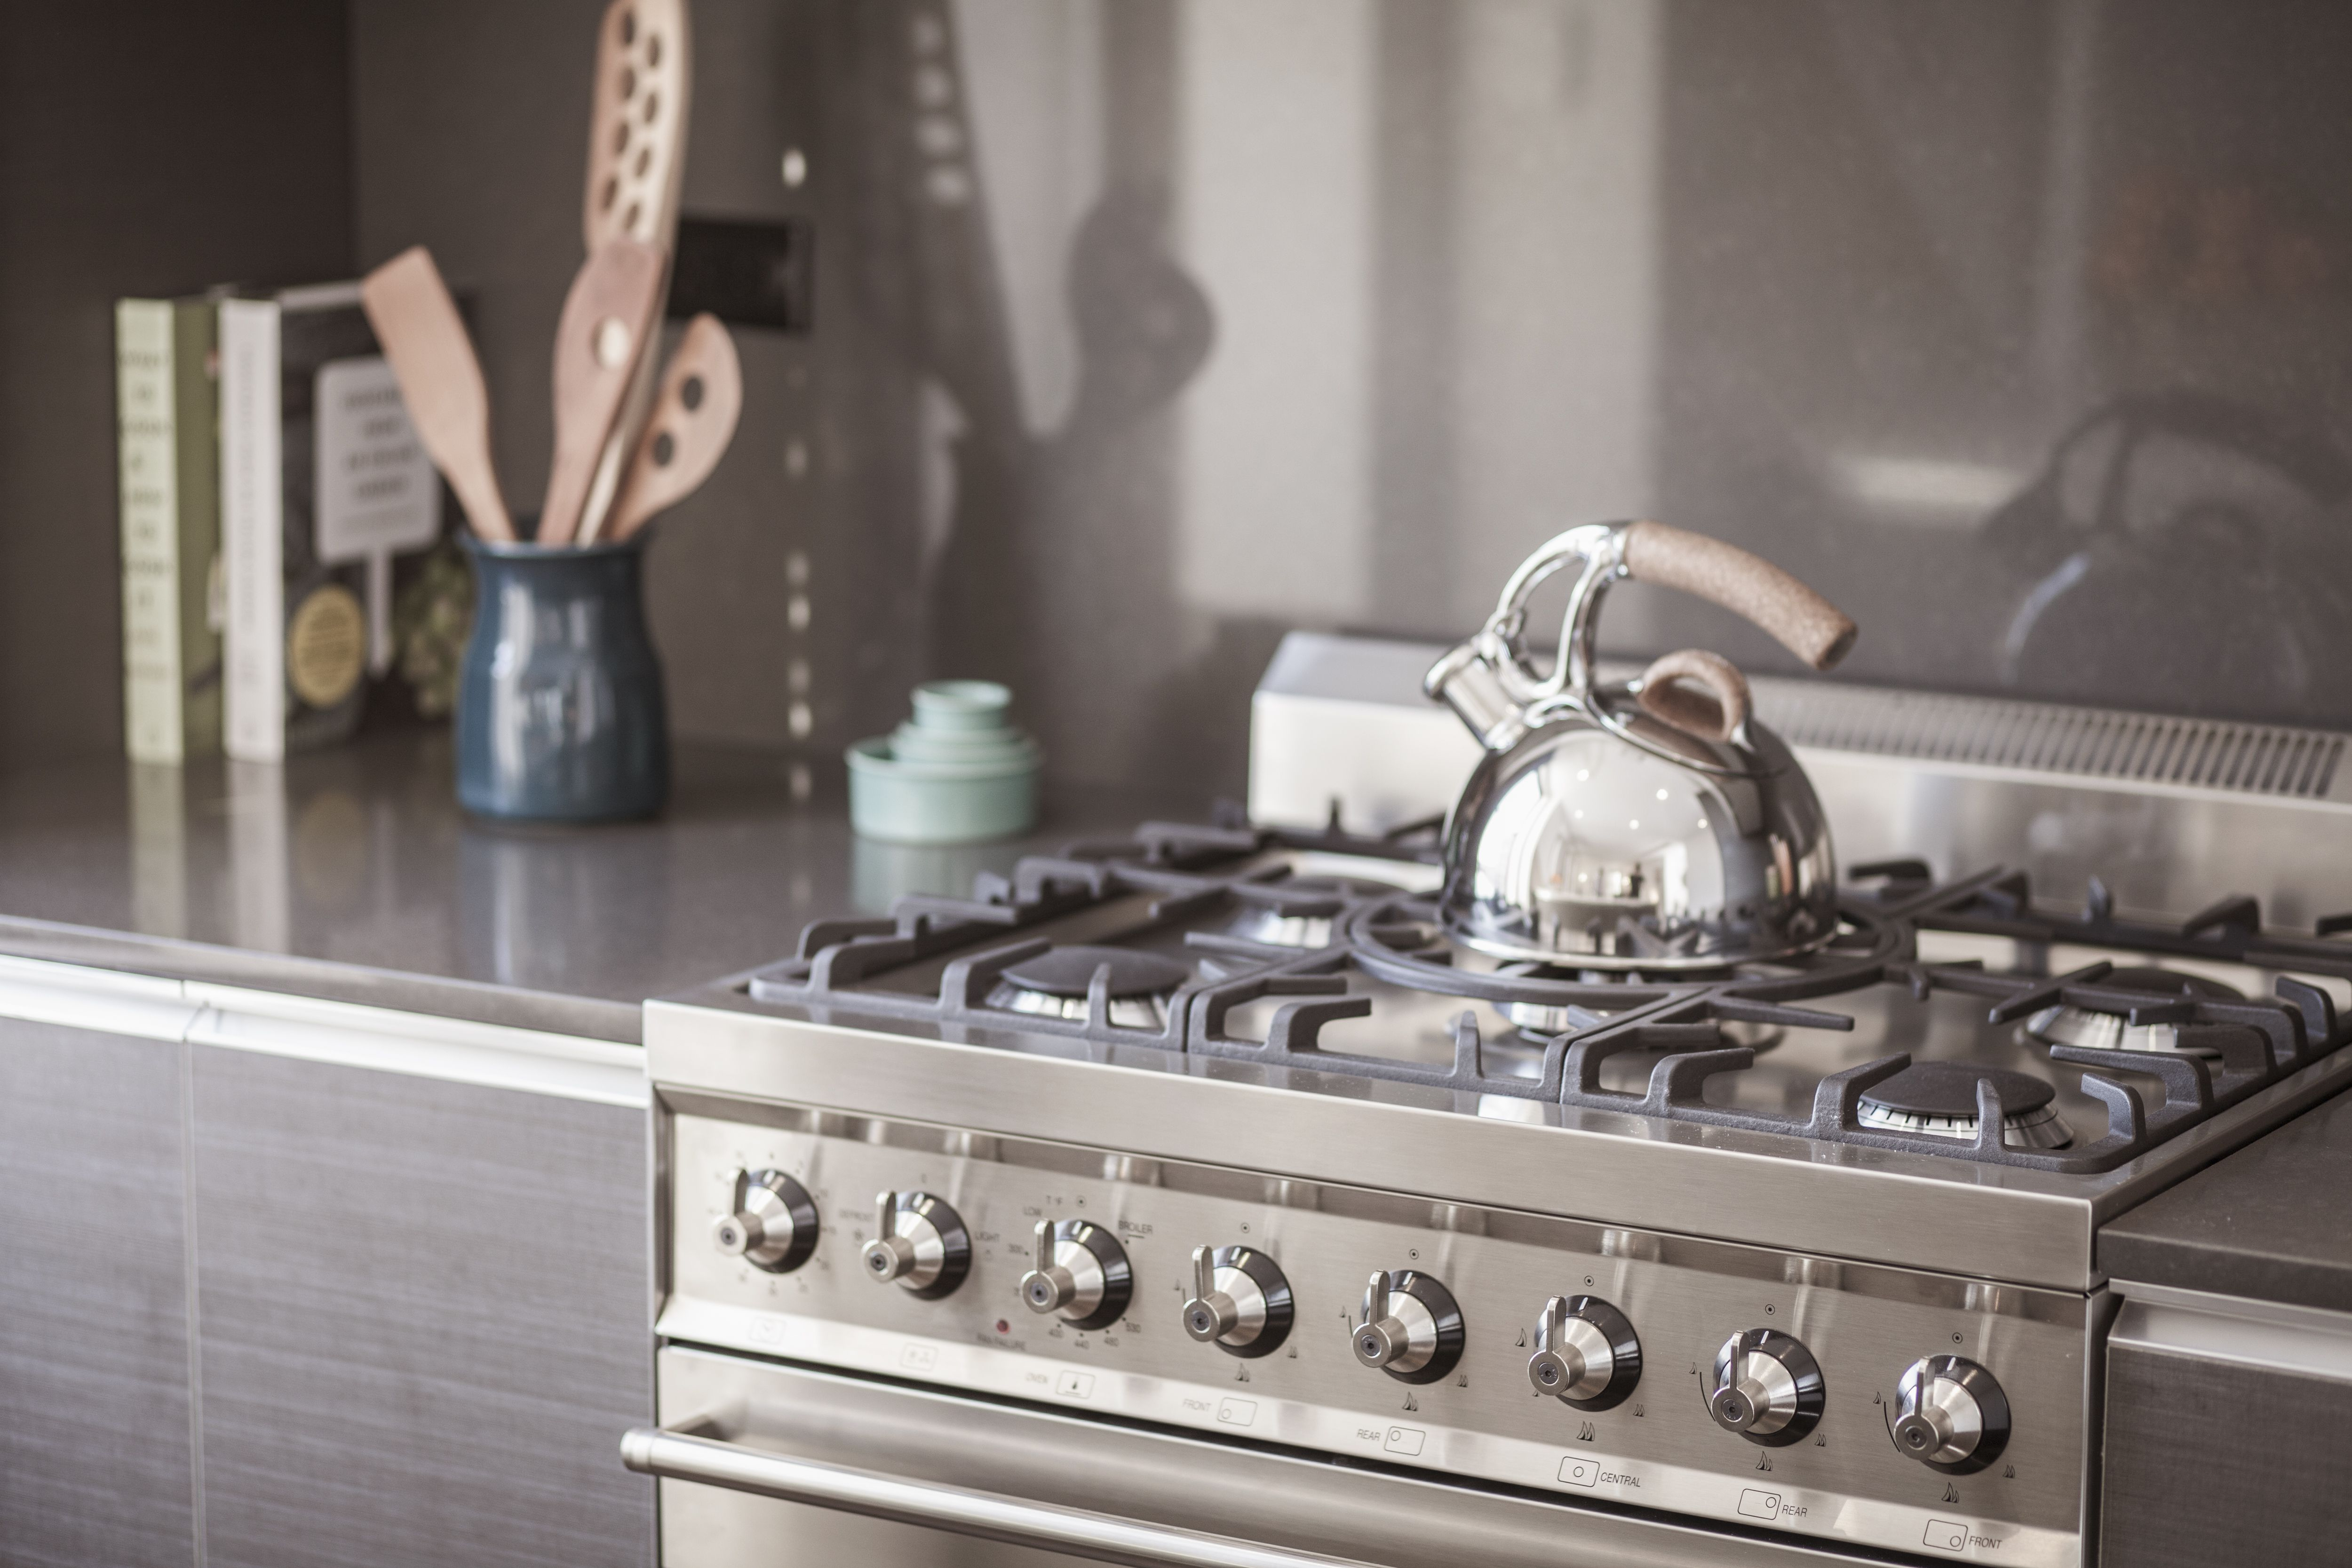 The 9 best stoves ranges cooktops to buy in 2018 Kitchen design center stove